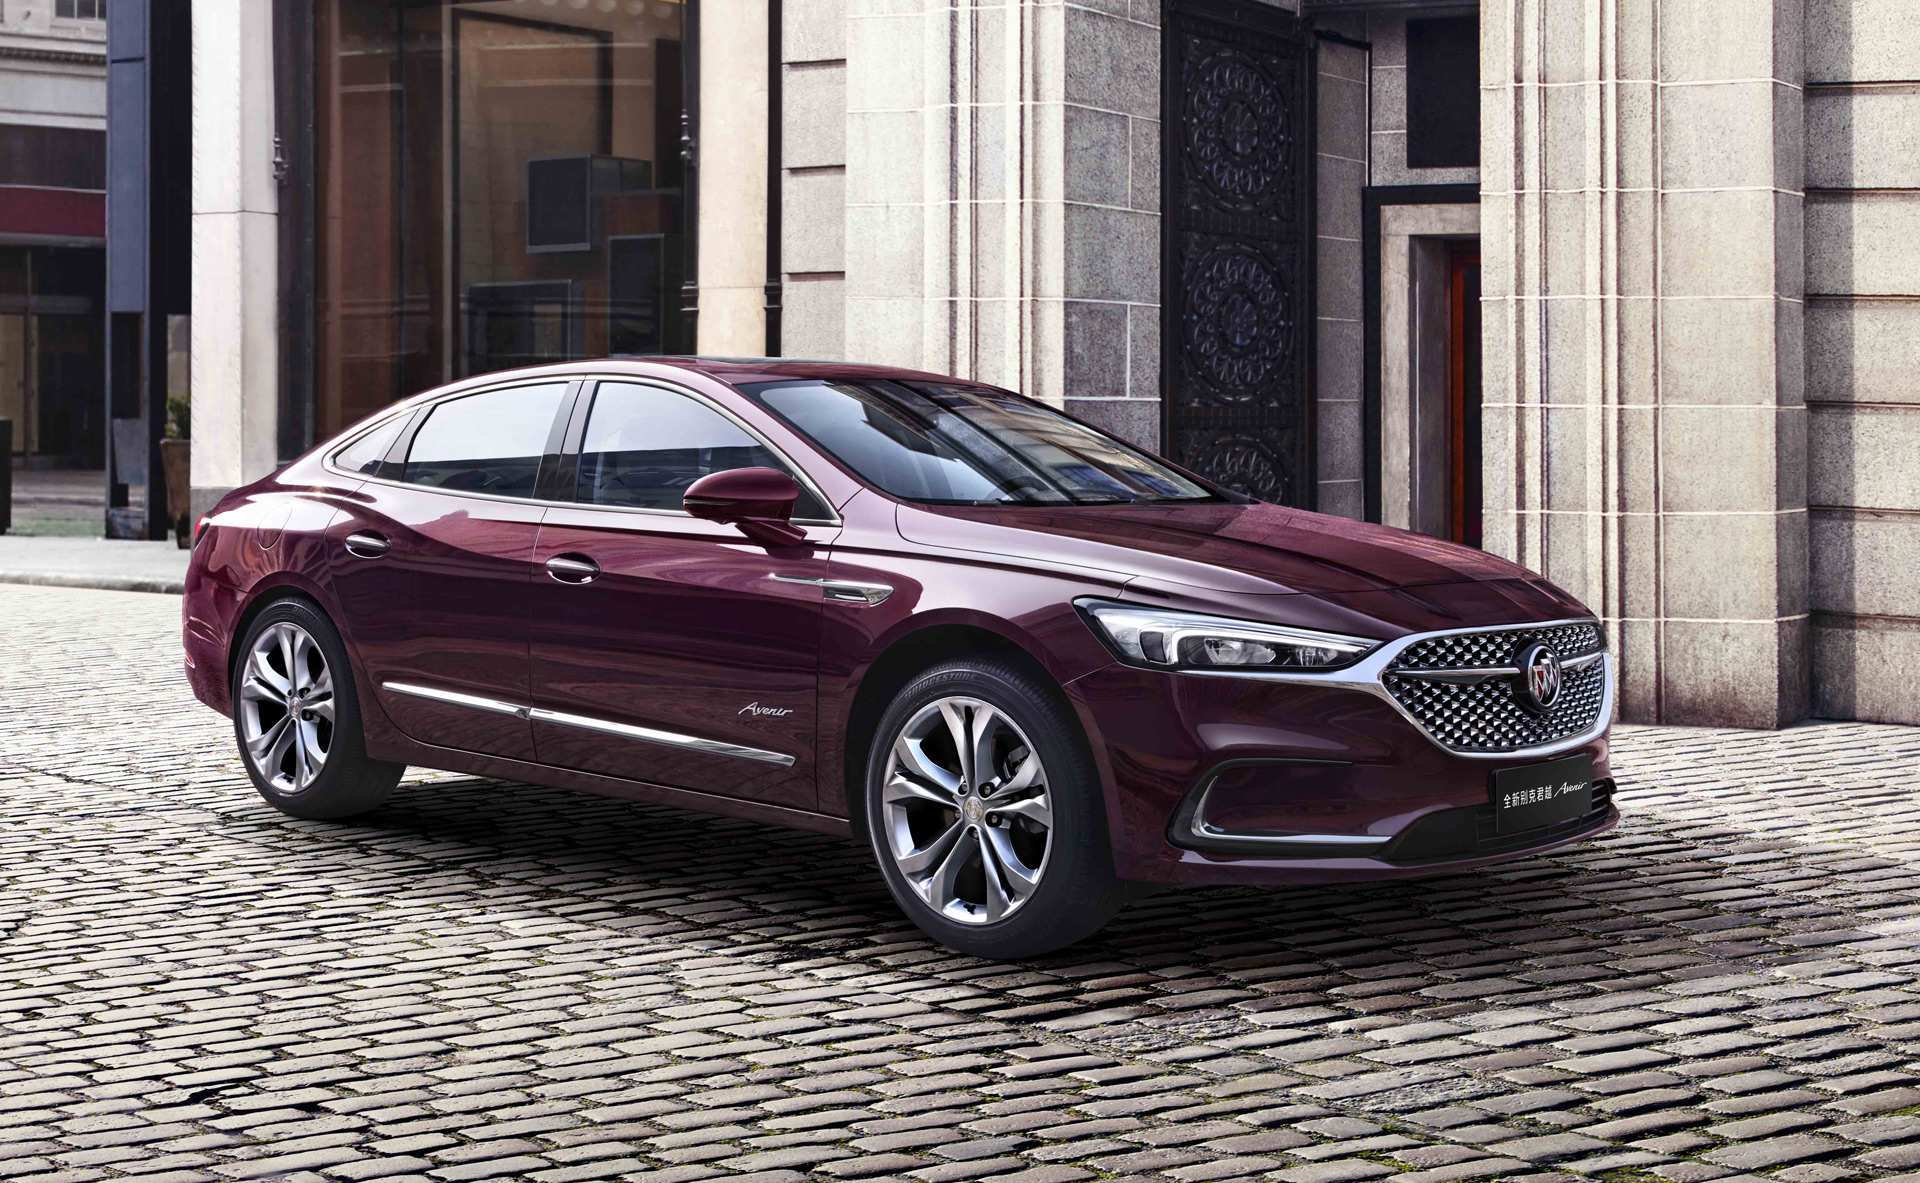 78 All New 2020 Buick Vehicles Specs and Review for 2020 Buick Vehicles